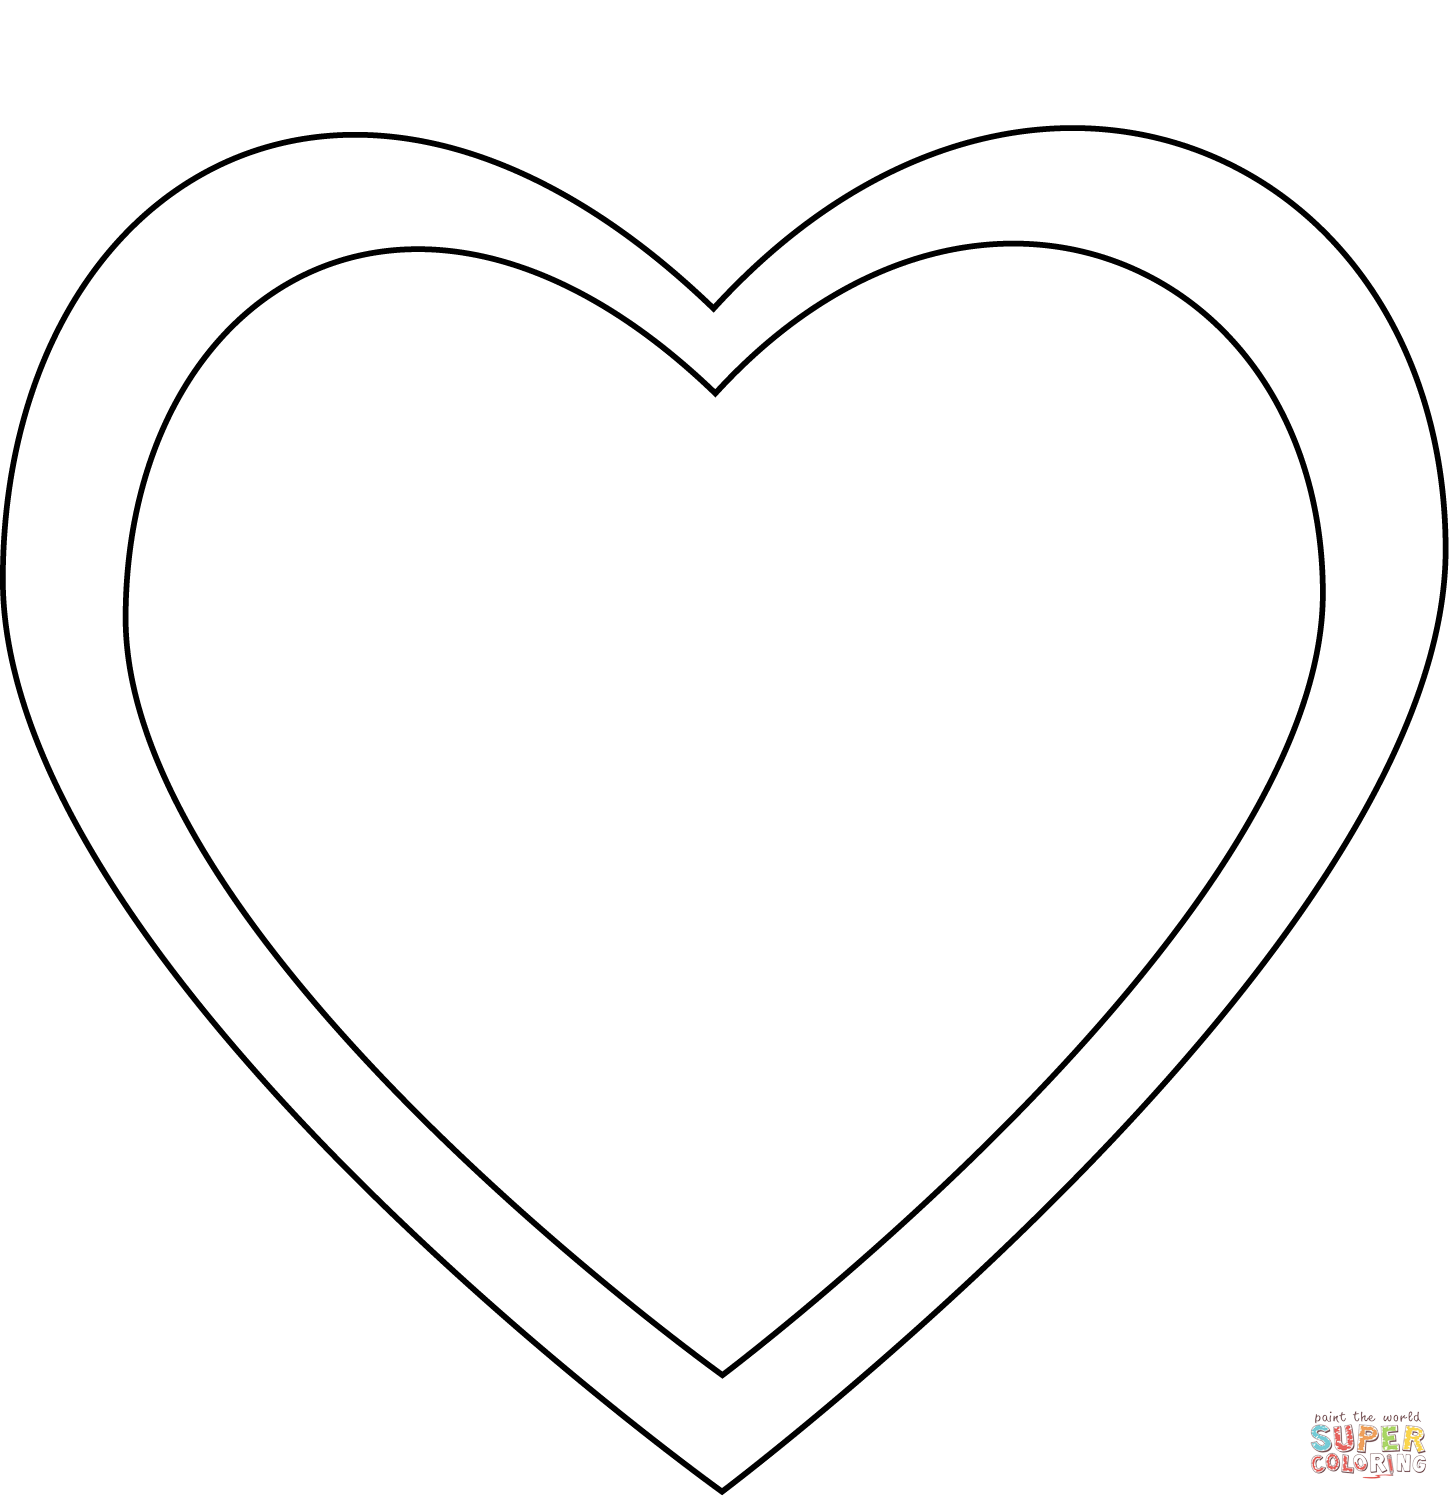 simple heart coloring pages simple heart super coloring in 2020 heart coloring heart pages simple coloring